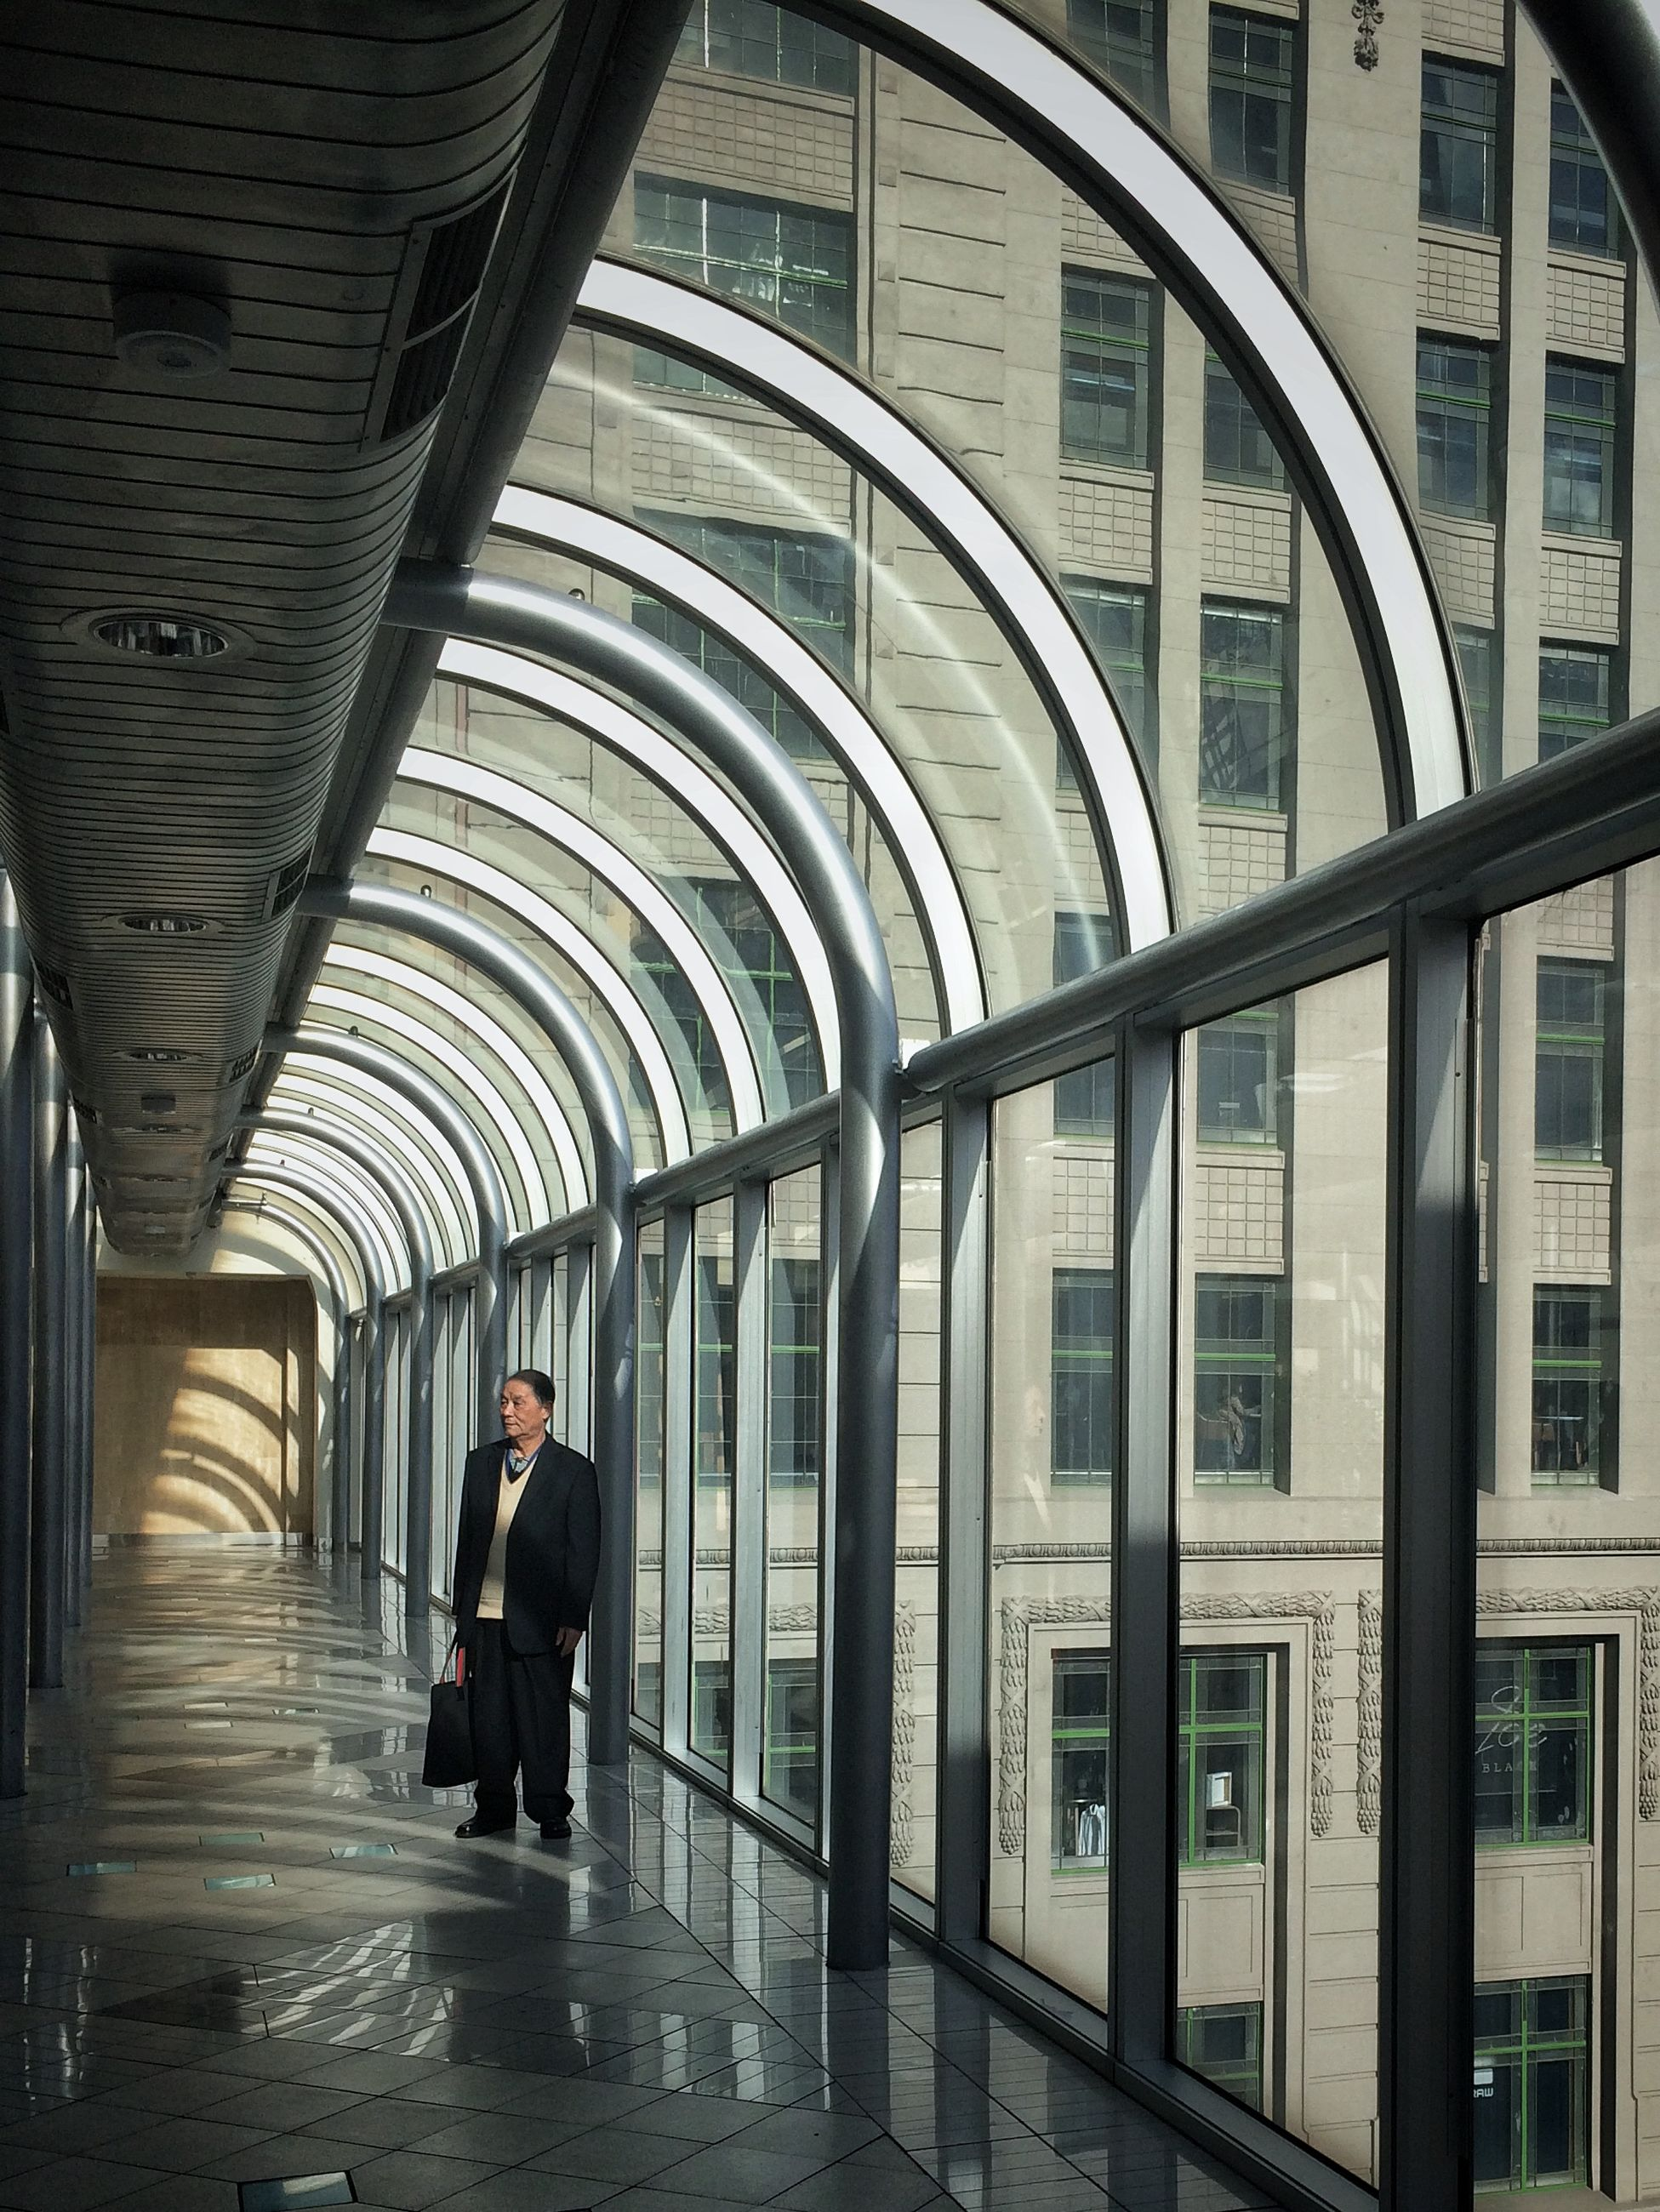 architecture, built structure, walking, men, indoors, full length, lifestyles, person, arch, rear view, building exterior, the way forward, city life, railroad station, leisure activity, city, corridor, building